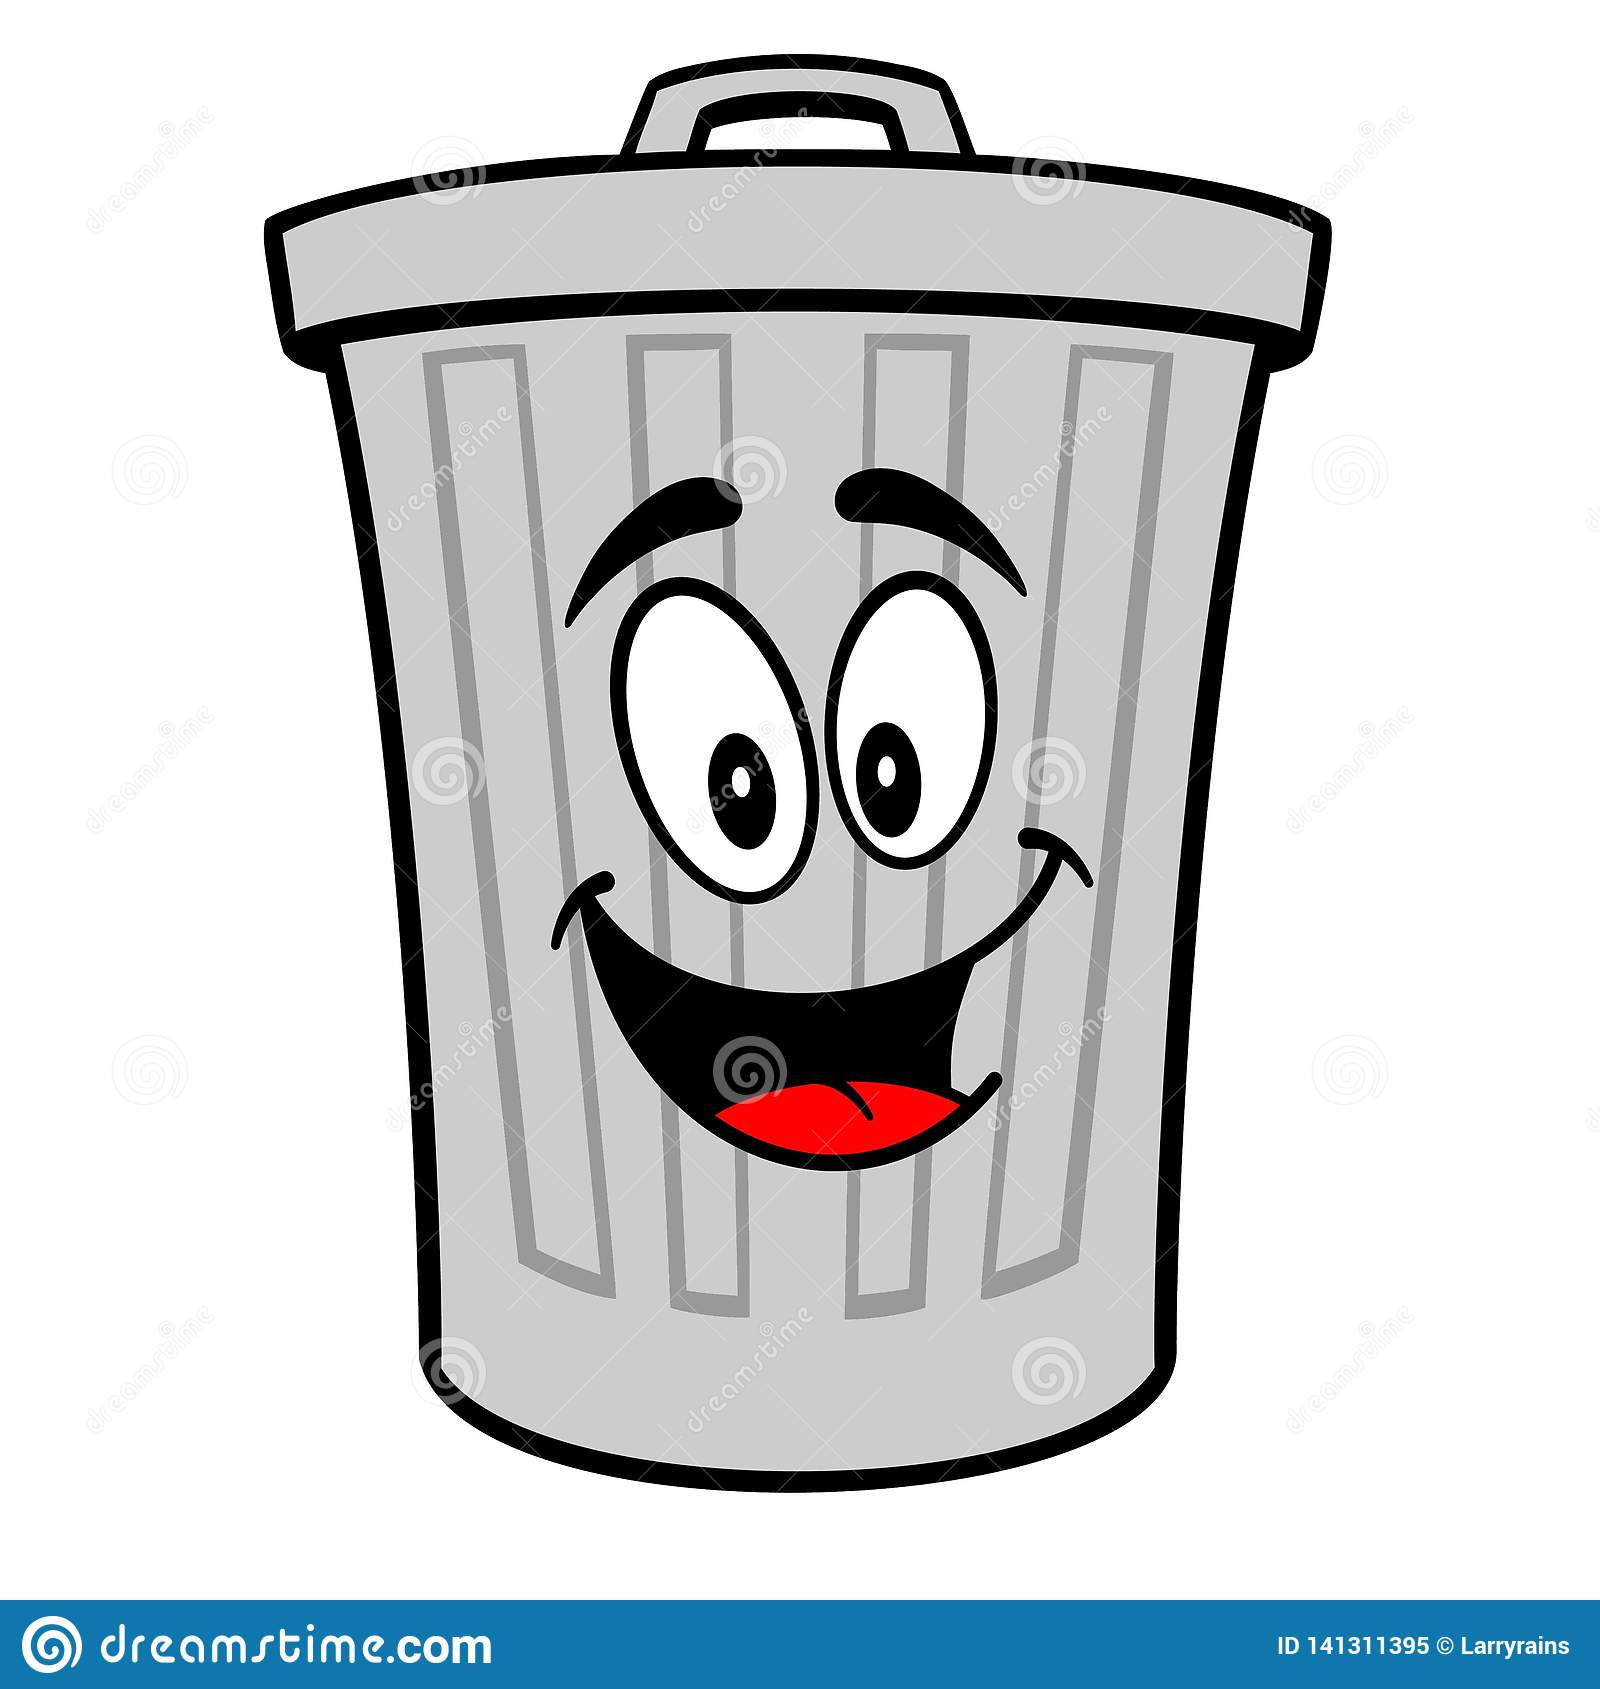 Trash Can Mascot Stock Vector Illustration Of Recycling 141311395